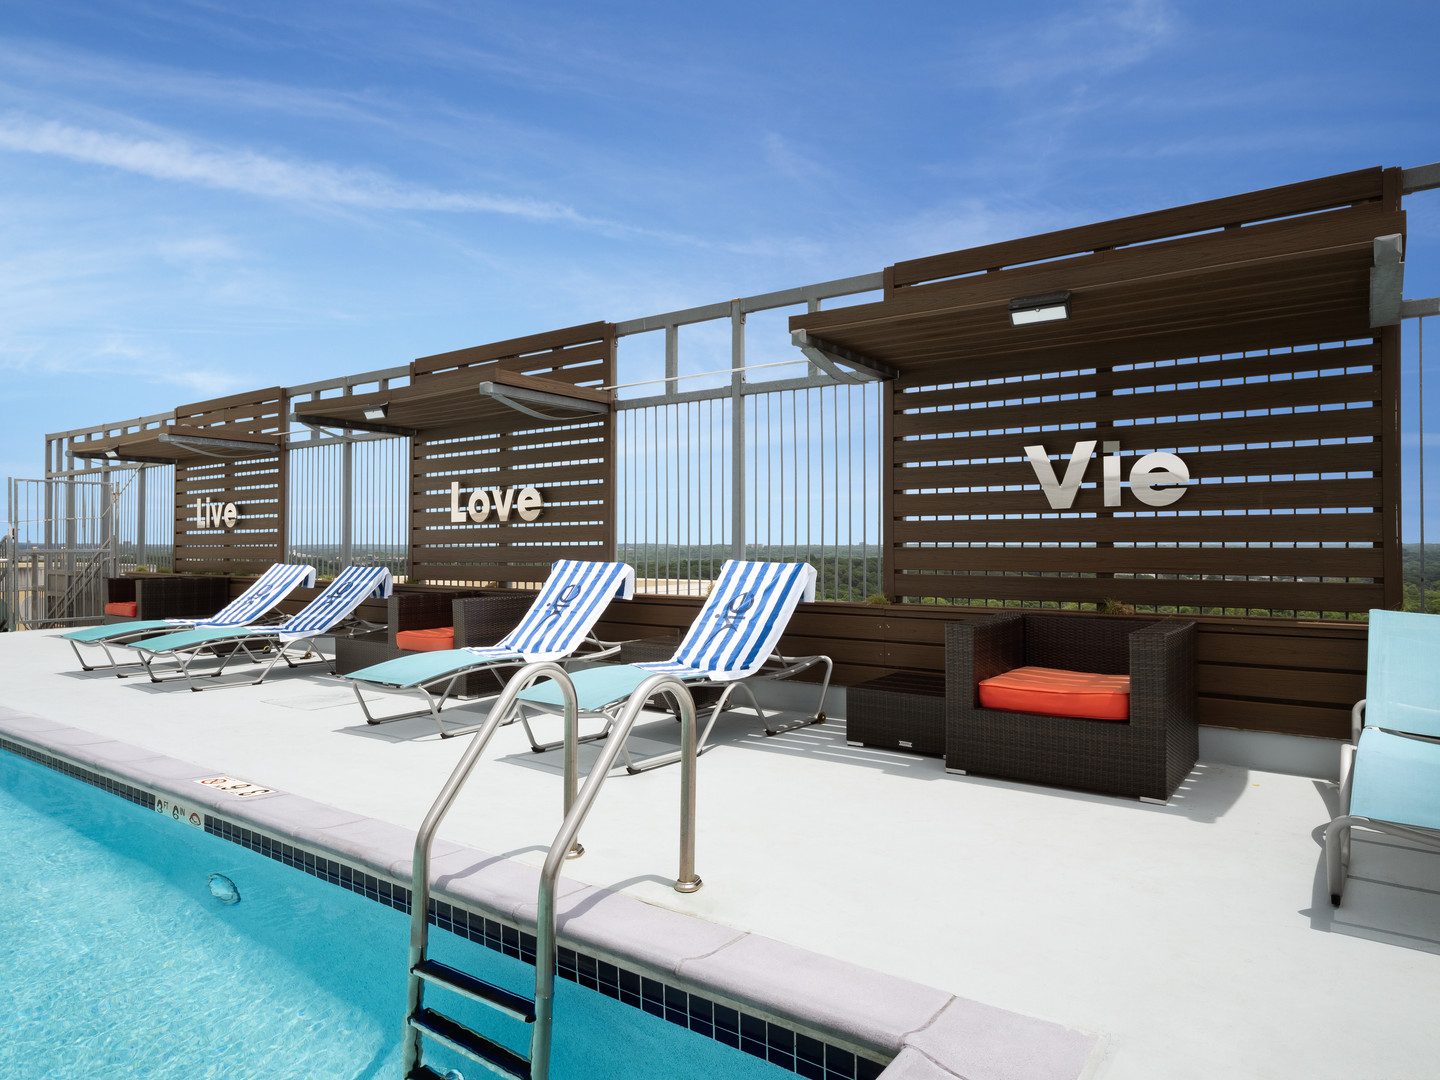 Vie Towers Pool